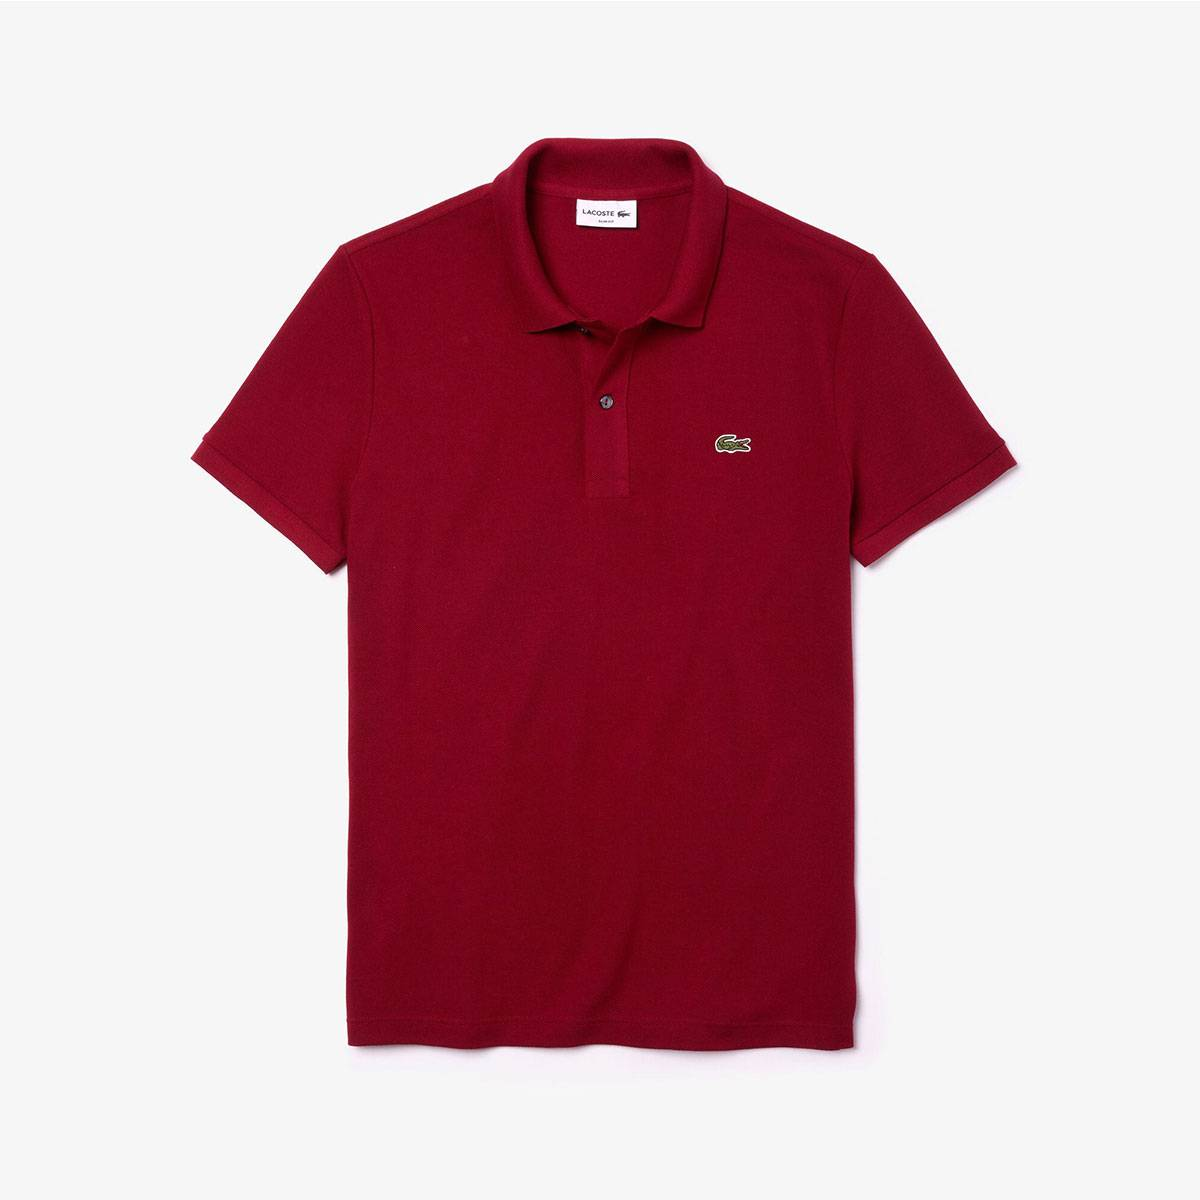 Lacoste Polo Uomo Slim Fit M/M Bordeaux - II - Uomo